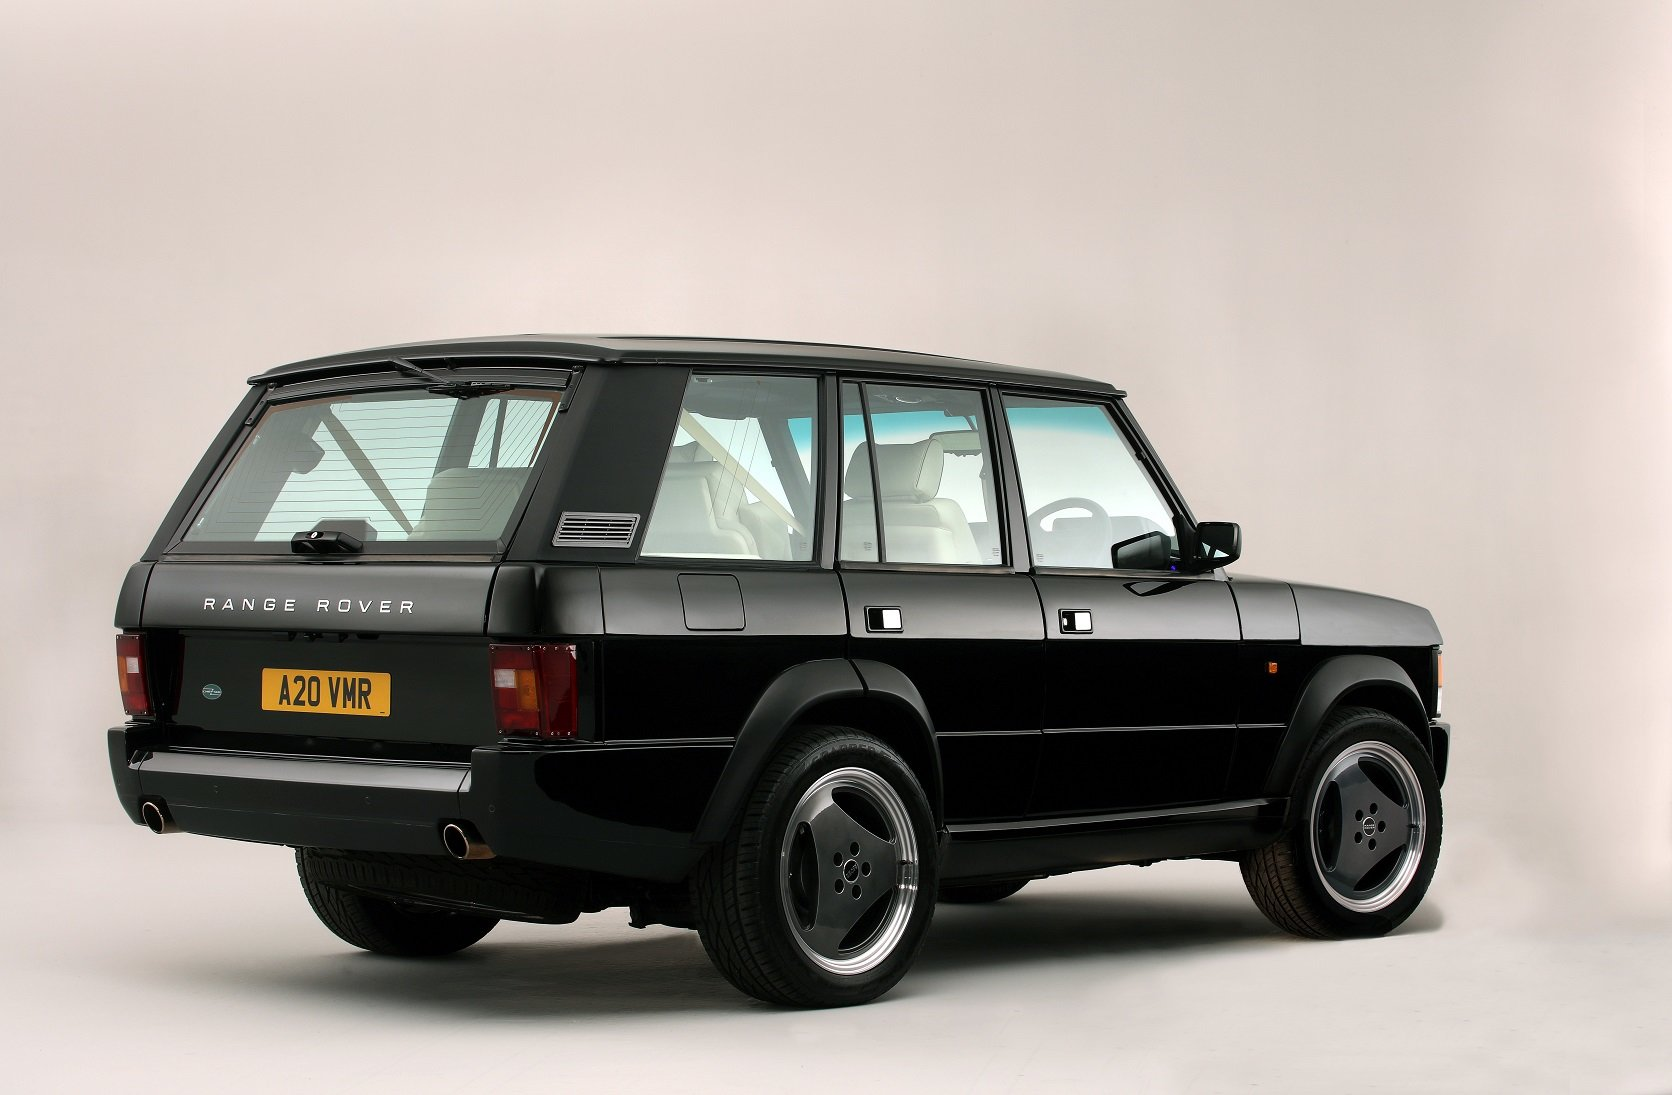 2004 Range Rover Chieftain, re-engineered Supercar For Sale (picture 3 of 6)